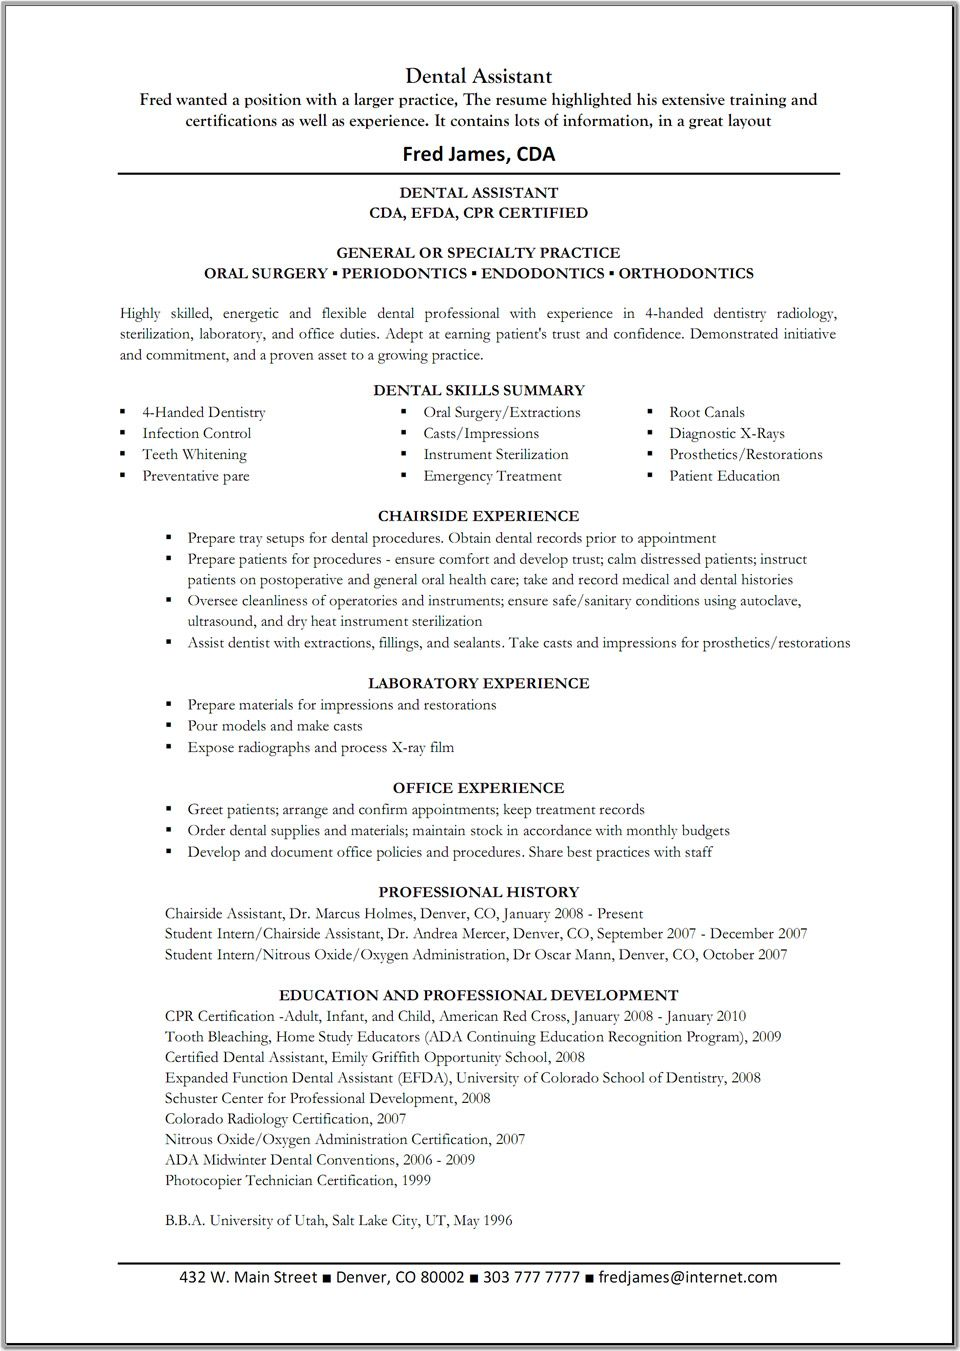 Dental Assistant Resume Template | Great Resume Templates  What A Great Resume Looks Like